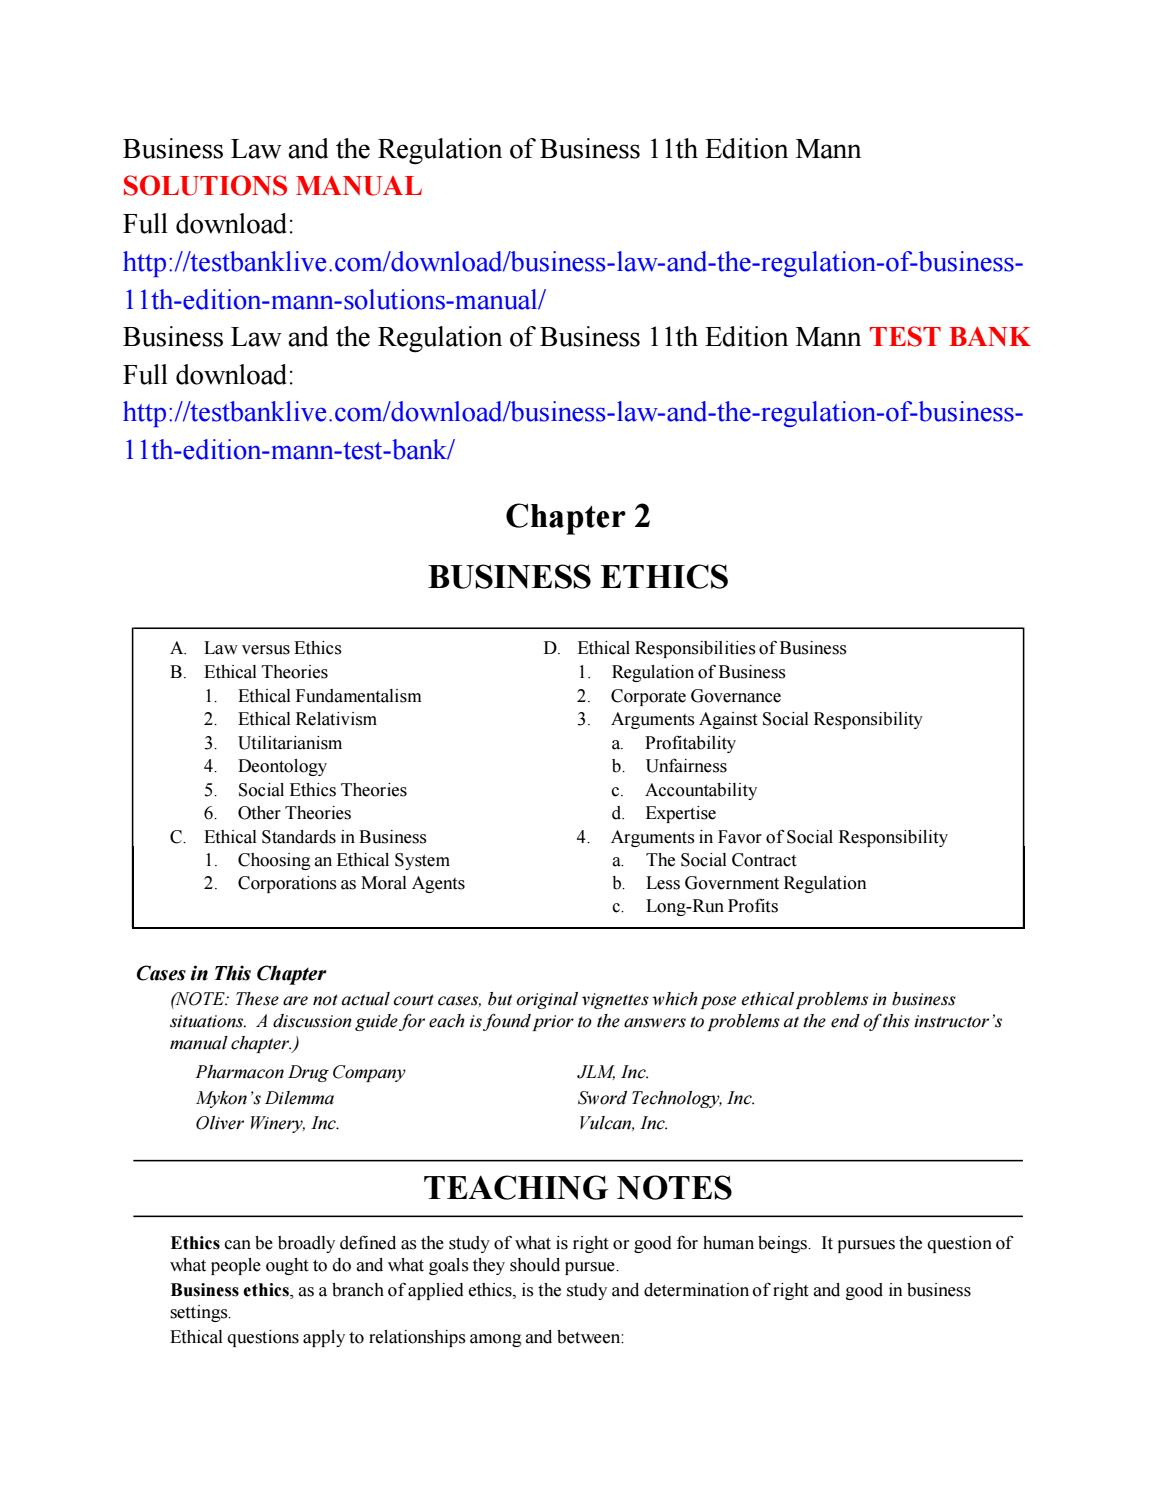 Business law and the regulation of business 11th edition mann